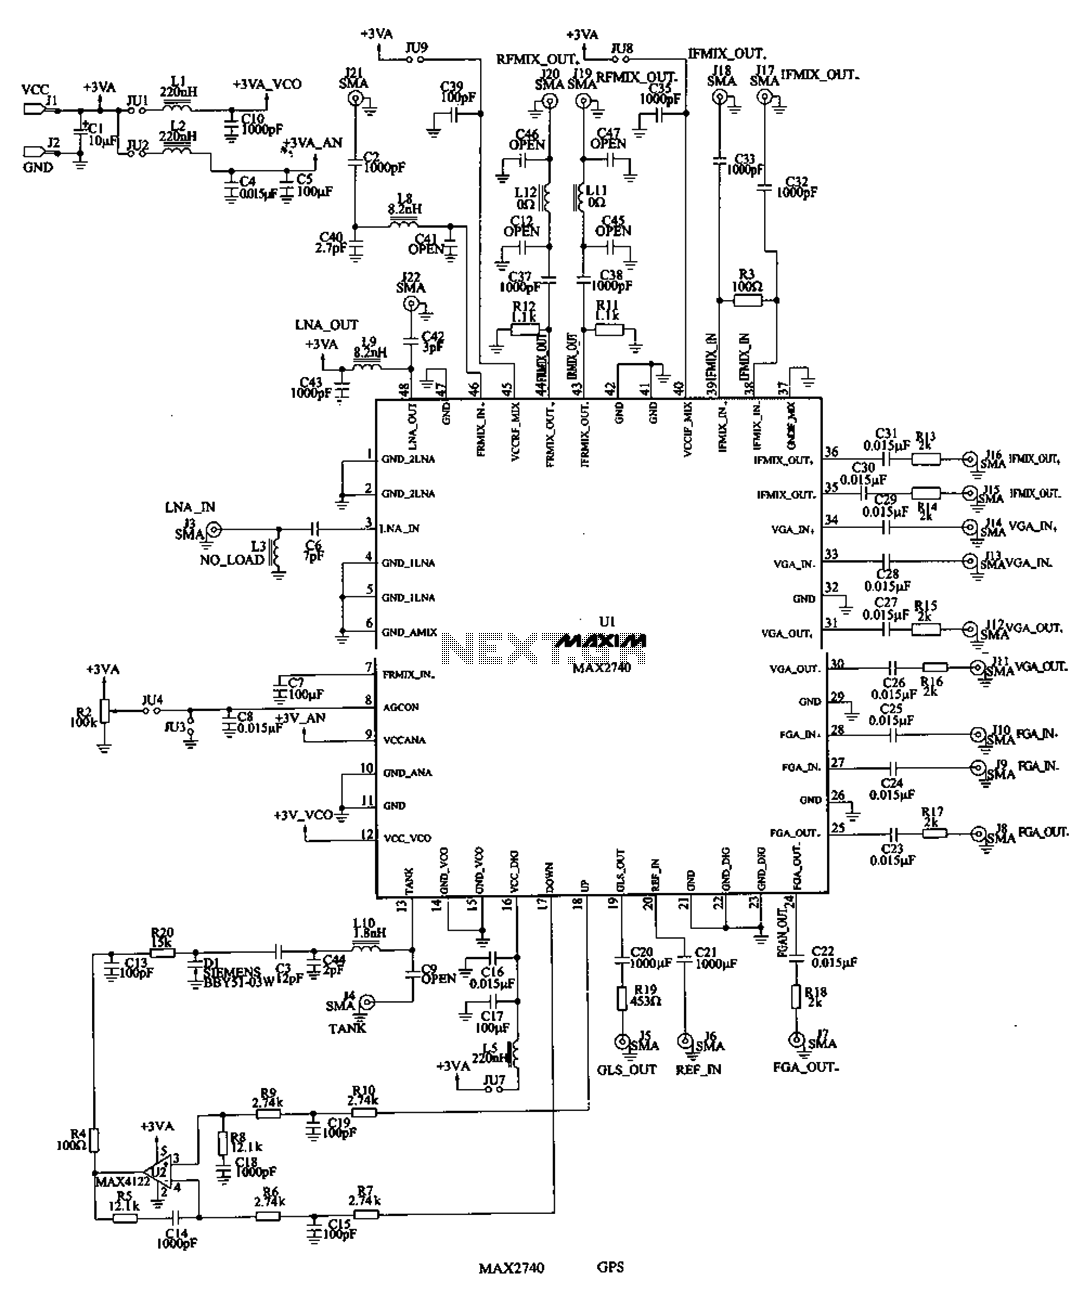 Circuits Drawing At Free For Personal Use Triac Circuit Page 2 Other Nextgr 1084x1294 Gps Rf